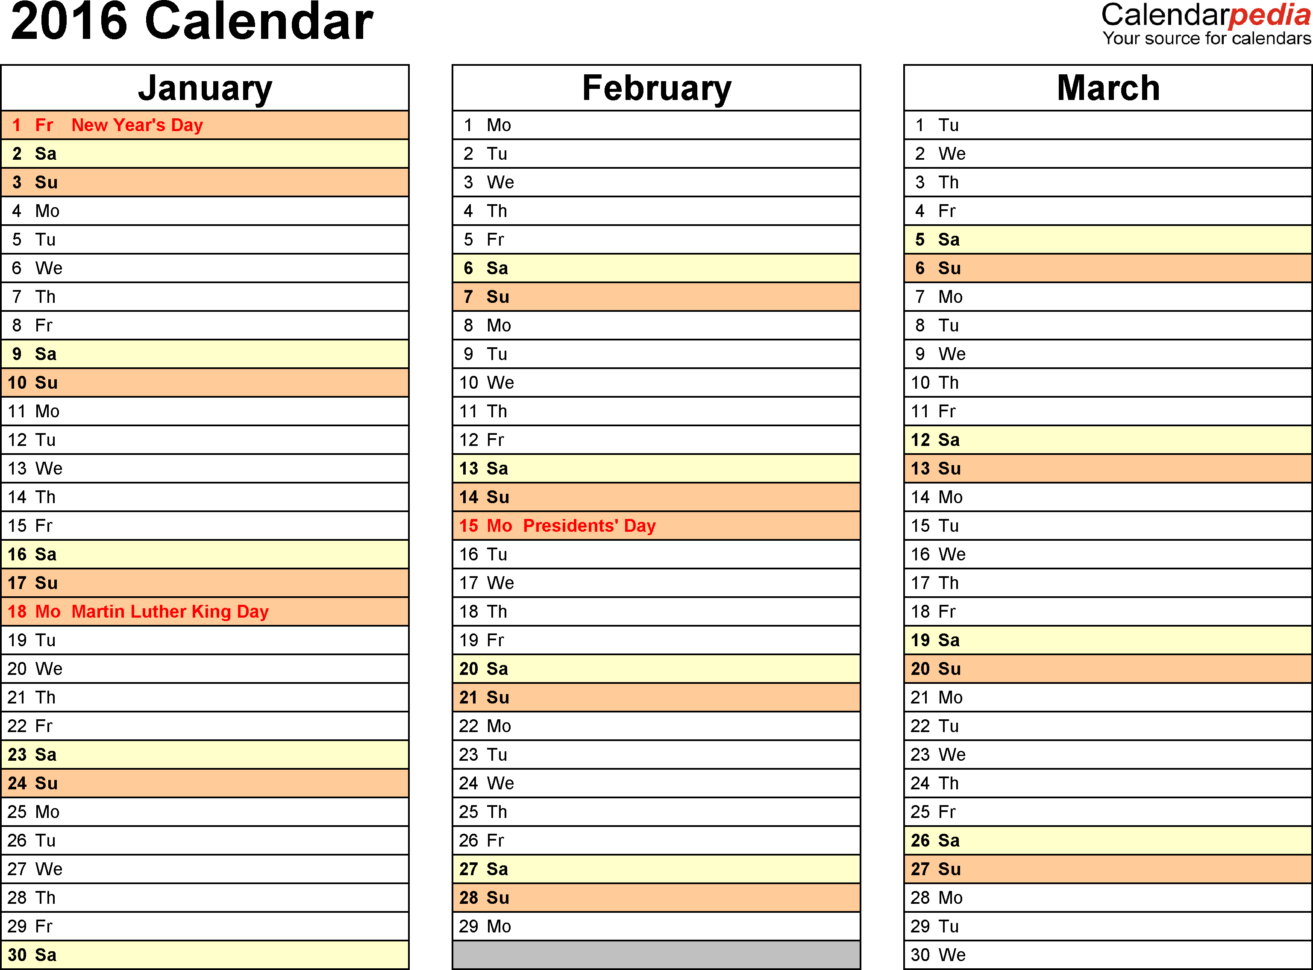 Free Coupon Organizer Spreadsheet With Regard To Free Printable Bill Organizer Template And 2016 Calendar 16 Free